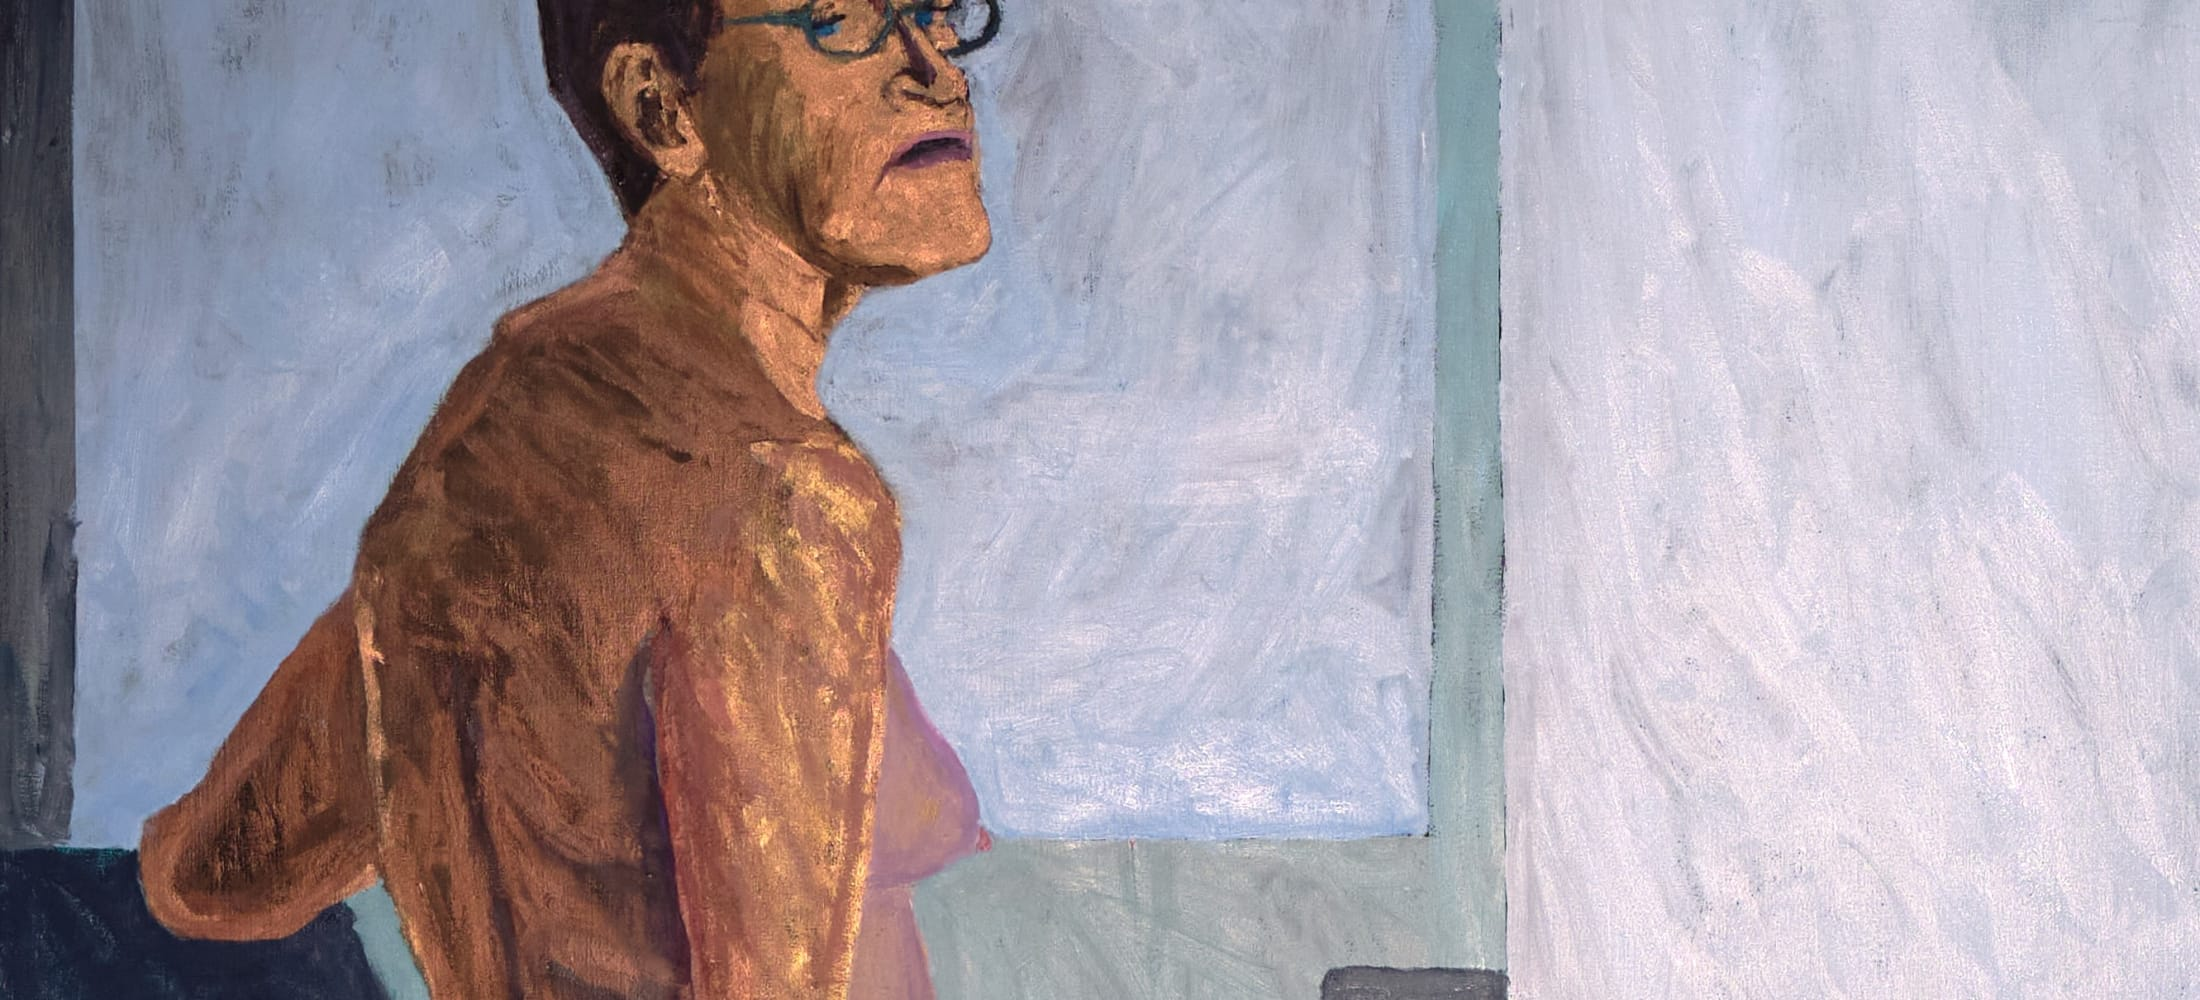 Lucy Jones' Being 66, Being wins the Ruth Borchard Self-Portrait Prize